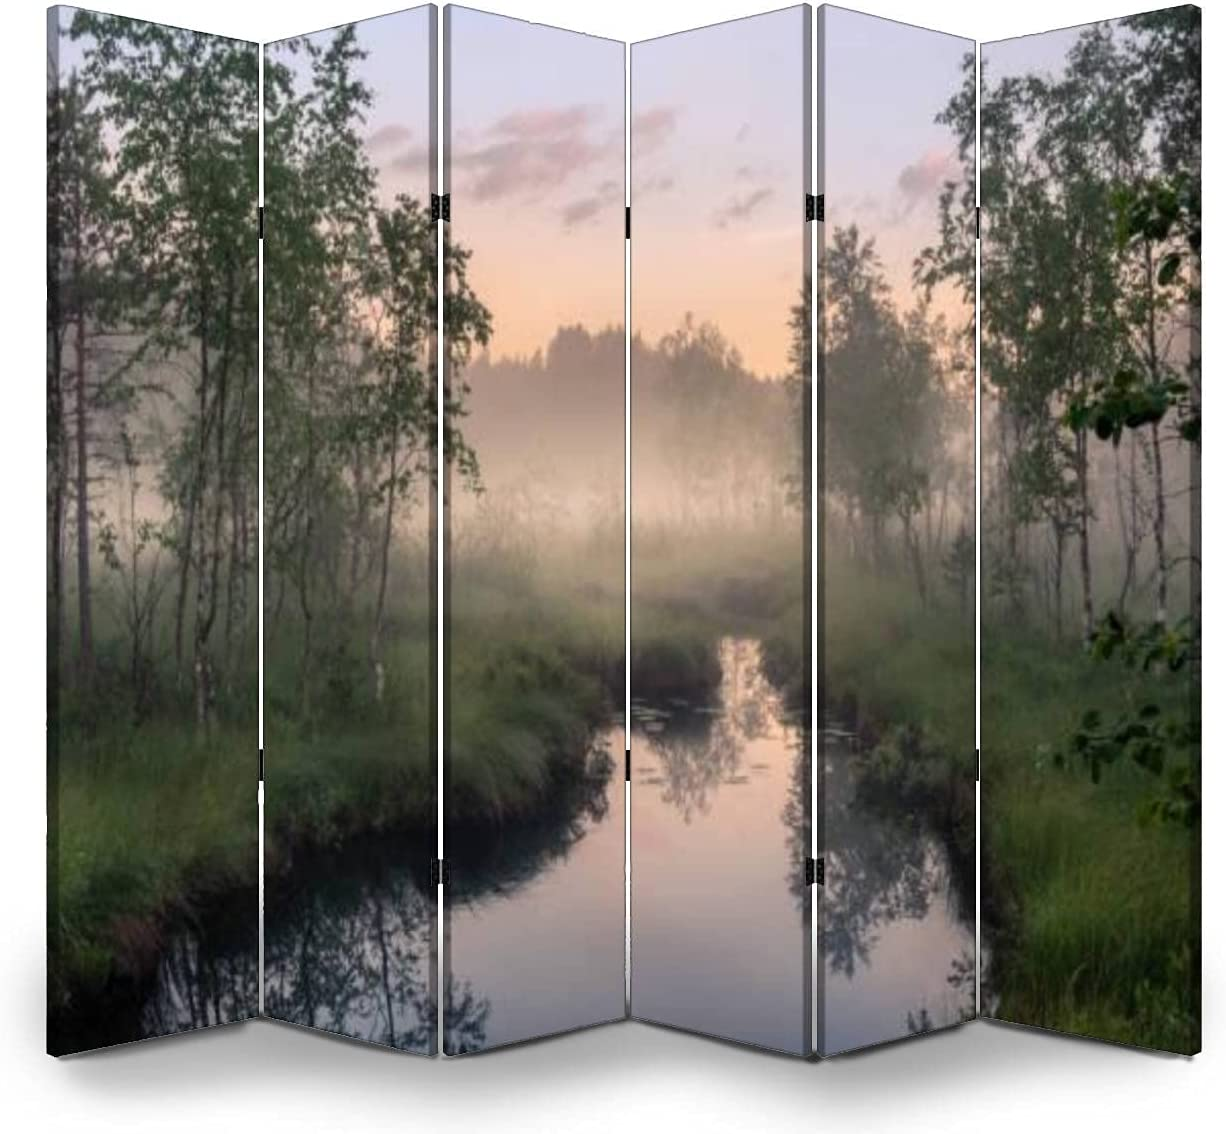 6 Panels Room Divider Screen Partition View Kansas City Mall Sale price with River Idyllic T